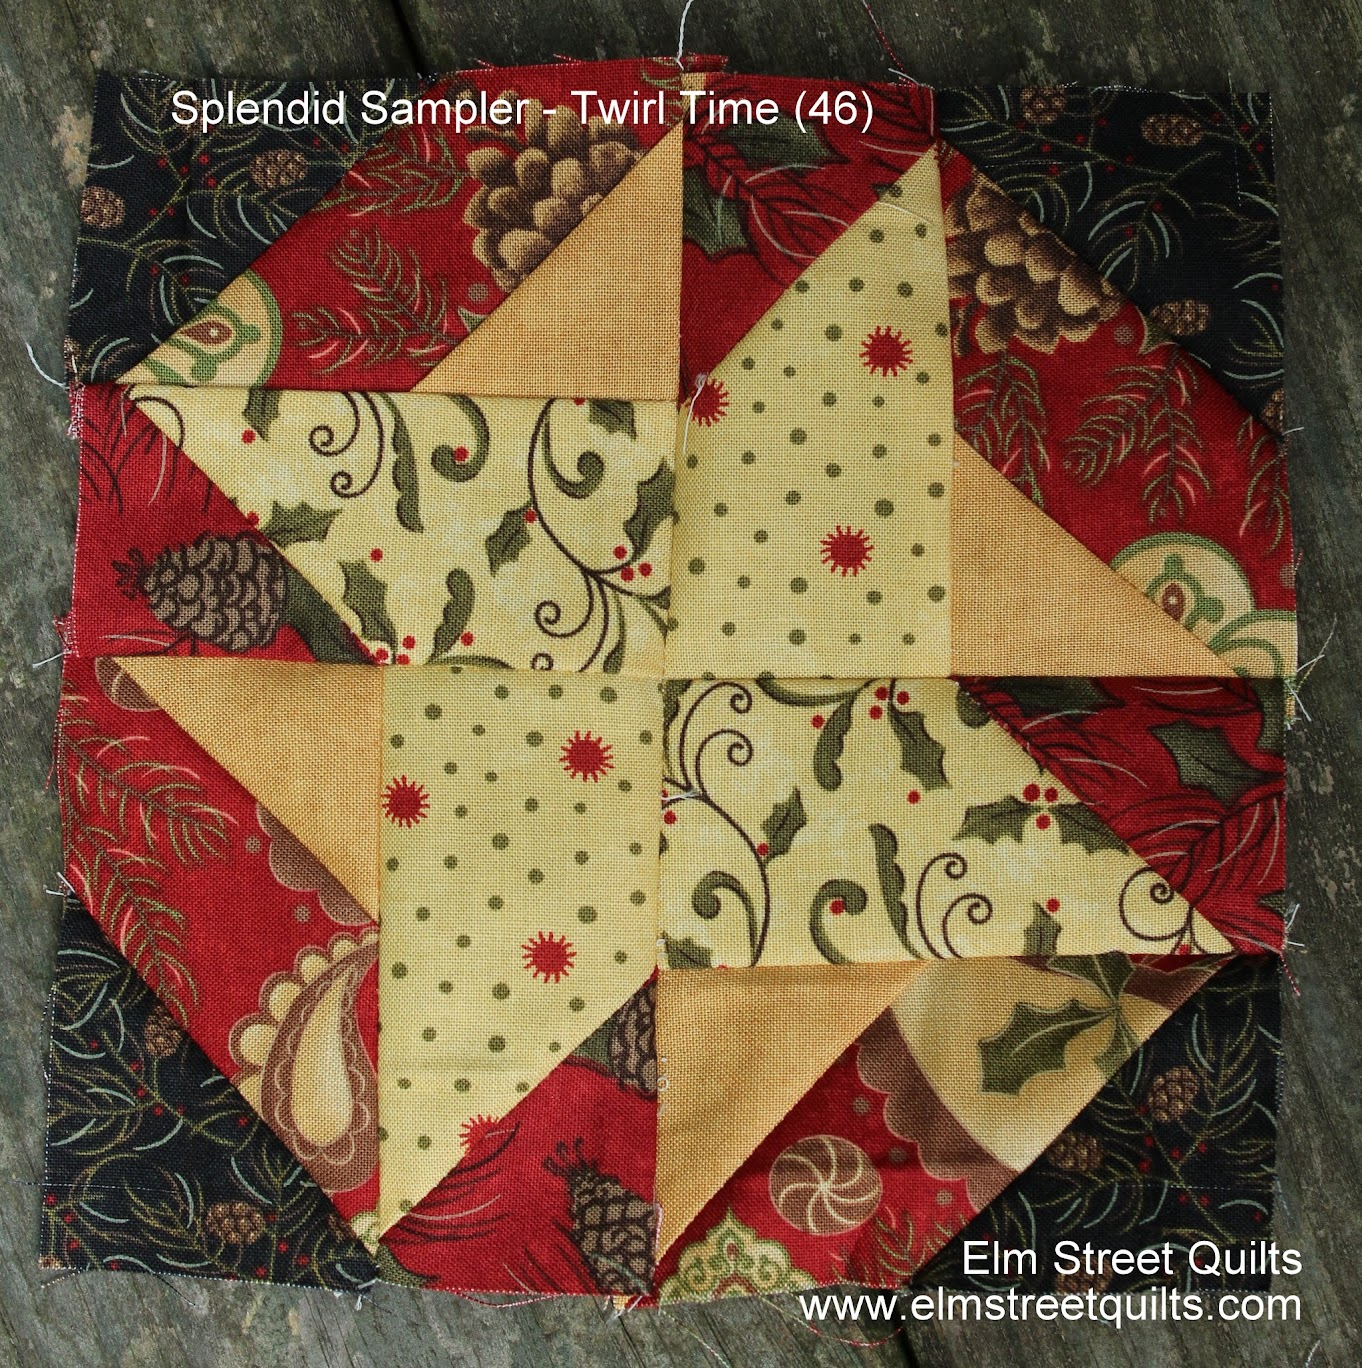 Splendid Sampler block 46